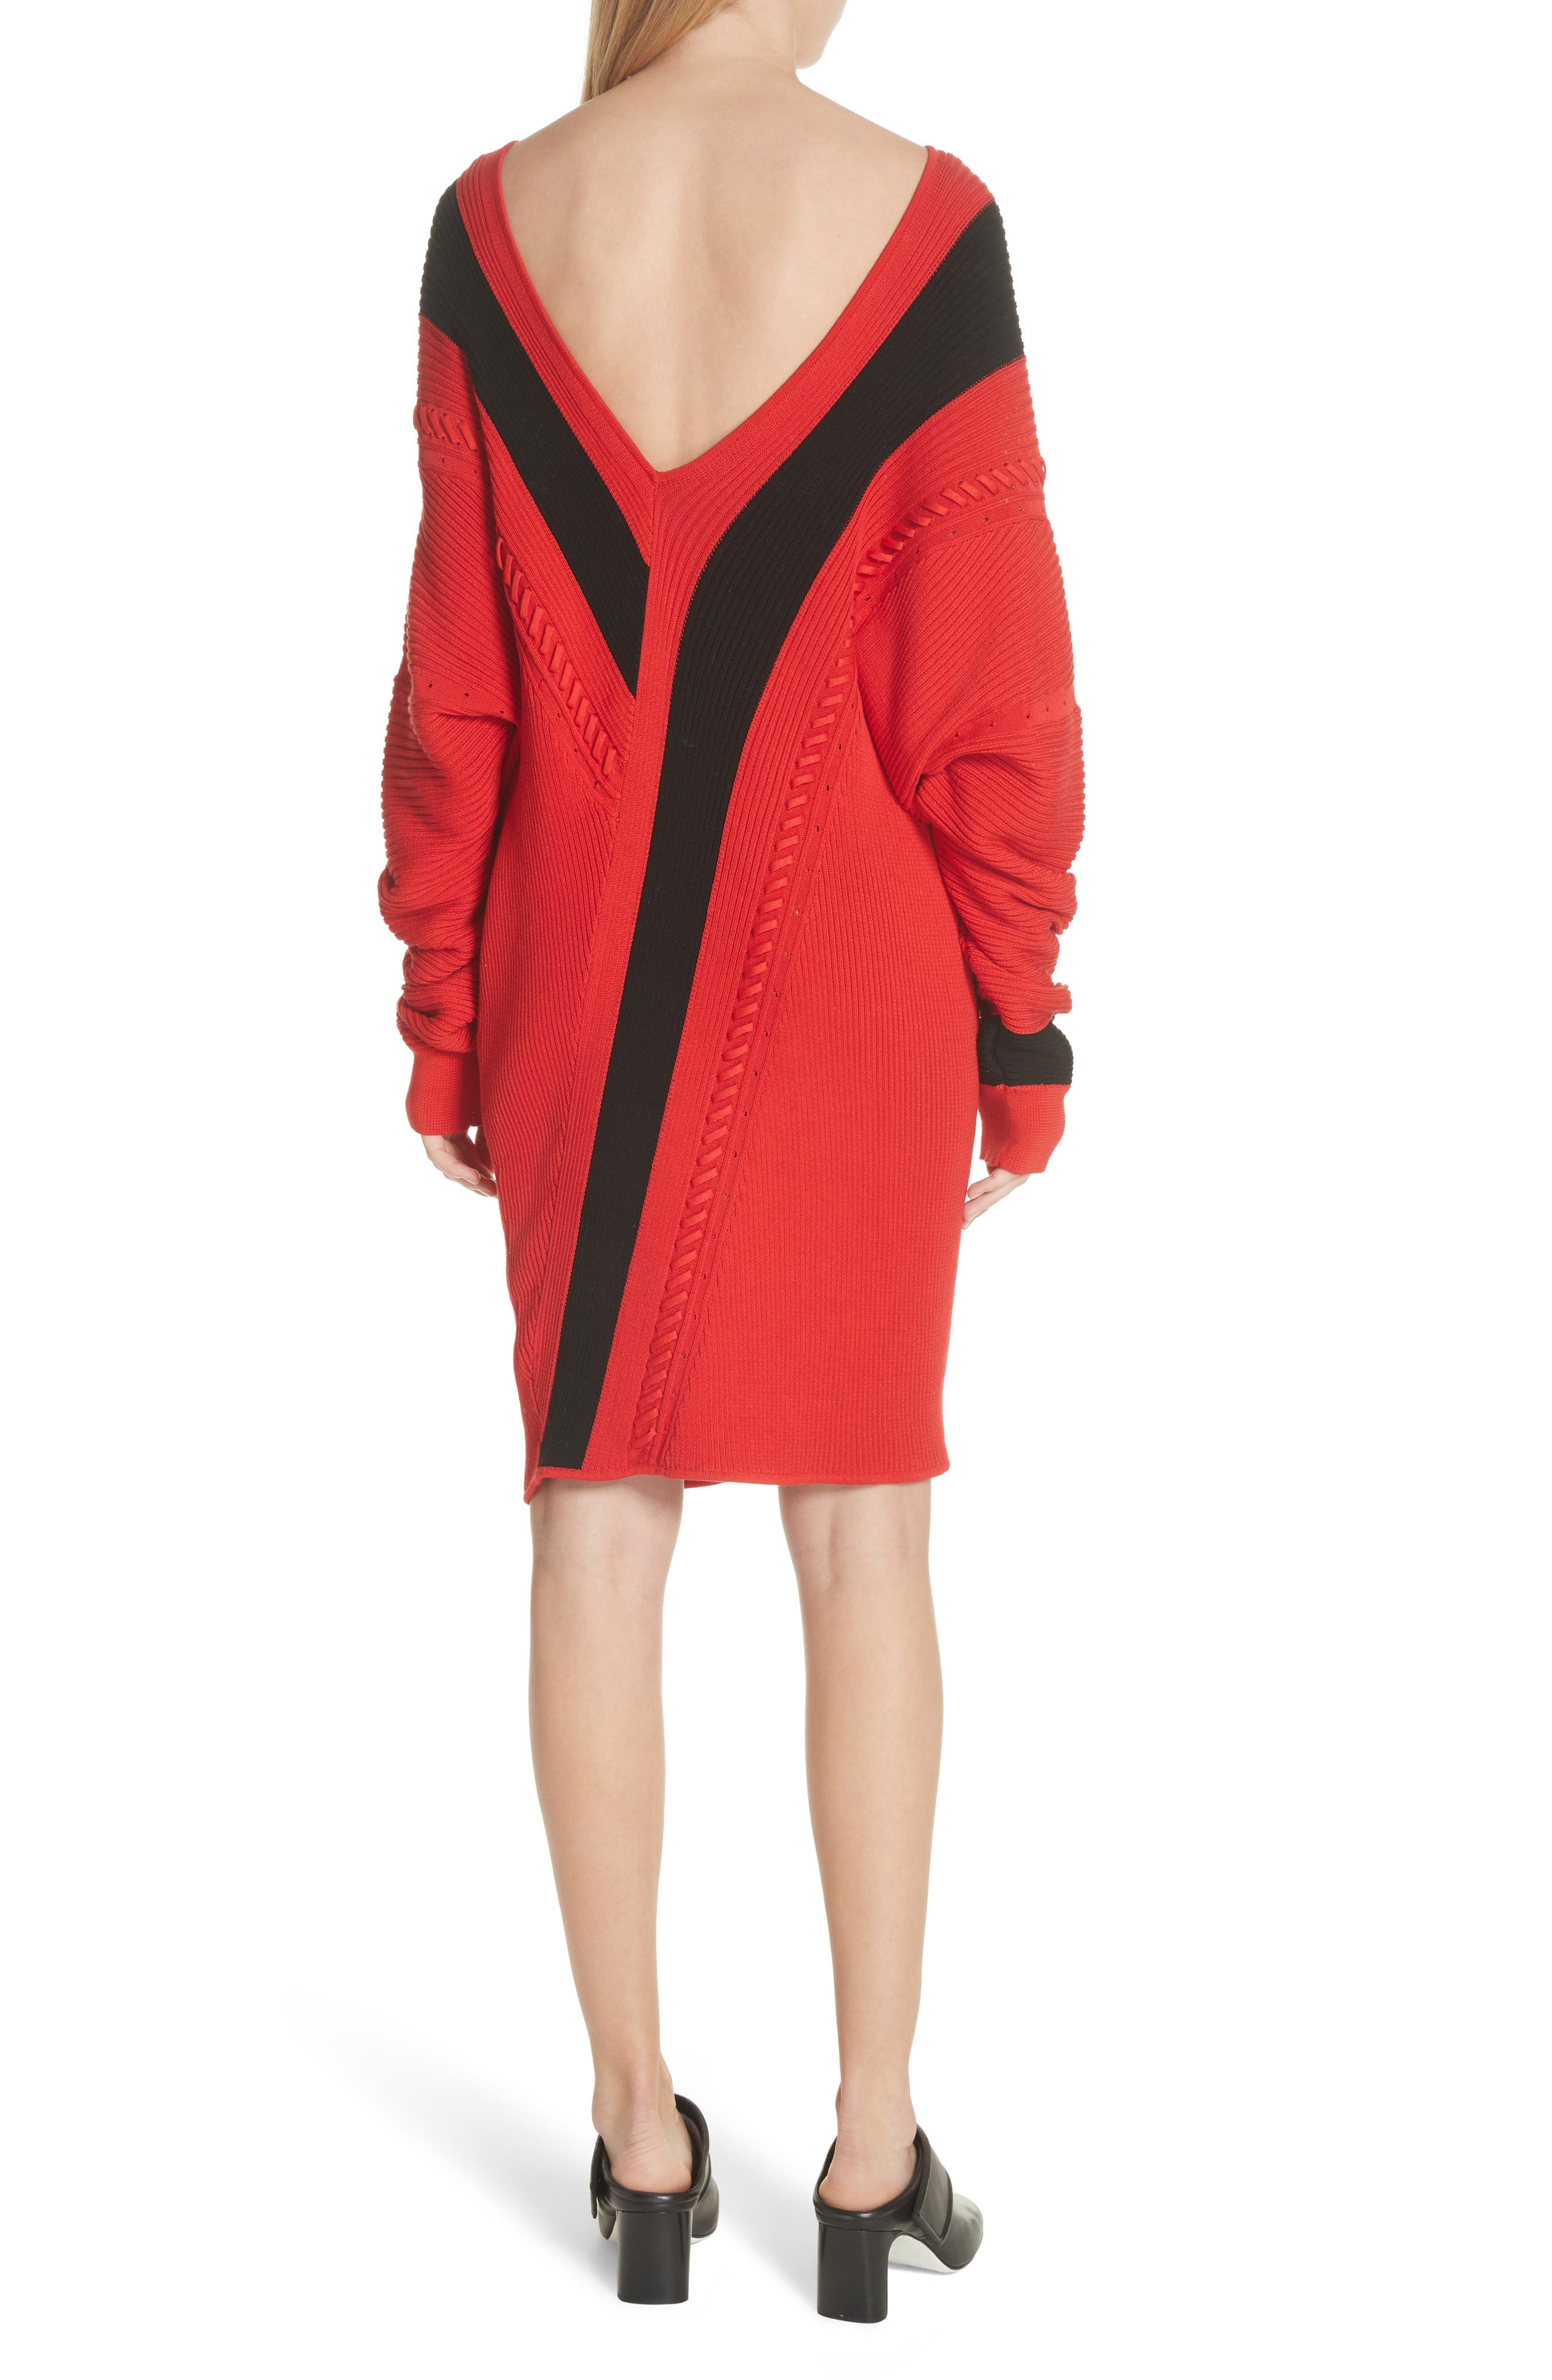 Cricket Reversible Sweater Dress,                             Alternate thumbnail 2, color,                             Red